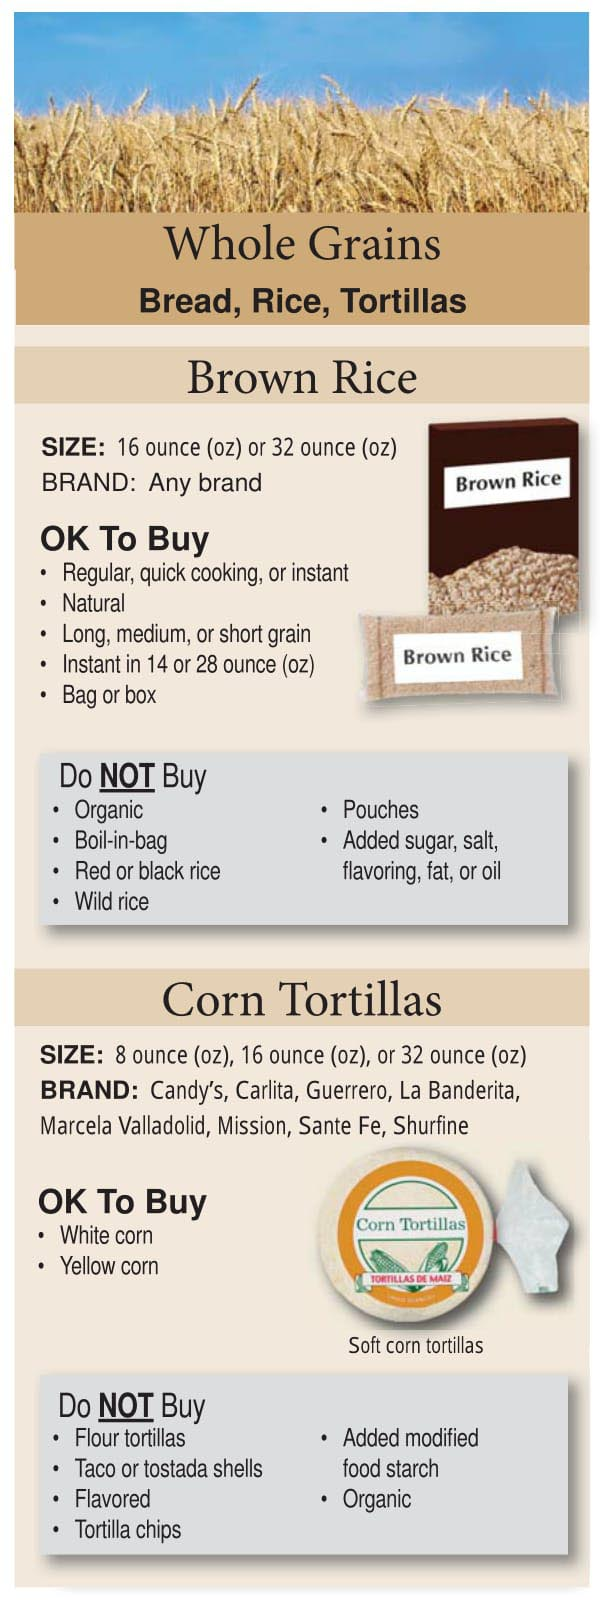 Colorado WIC Food List Whole Grains, Brown Rice and Corn Tortillas